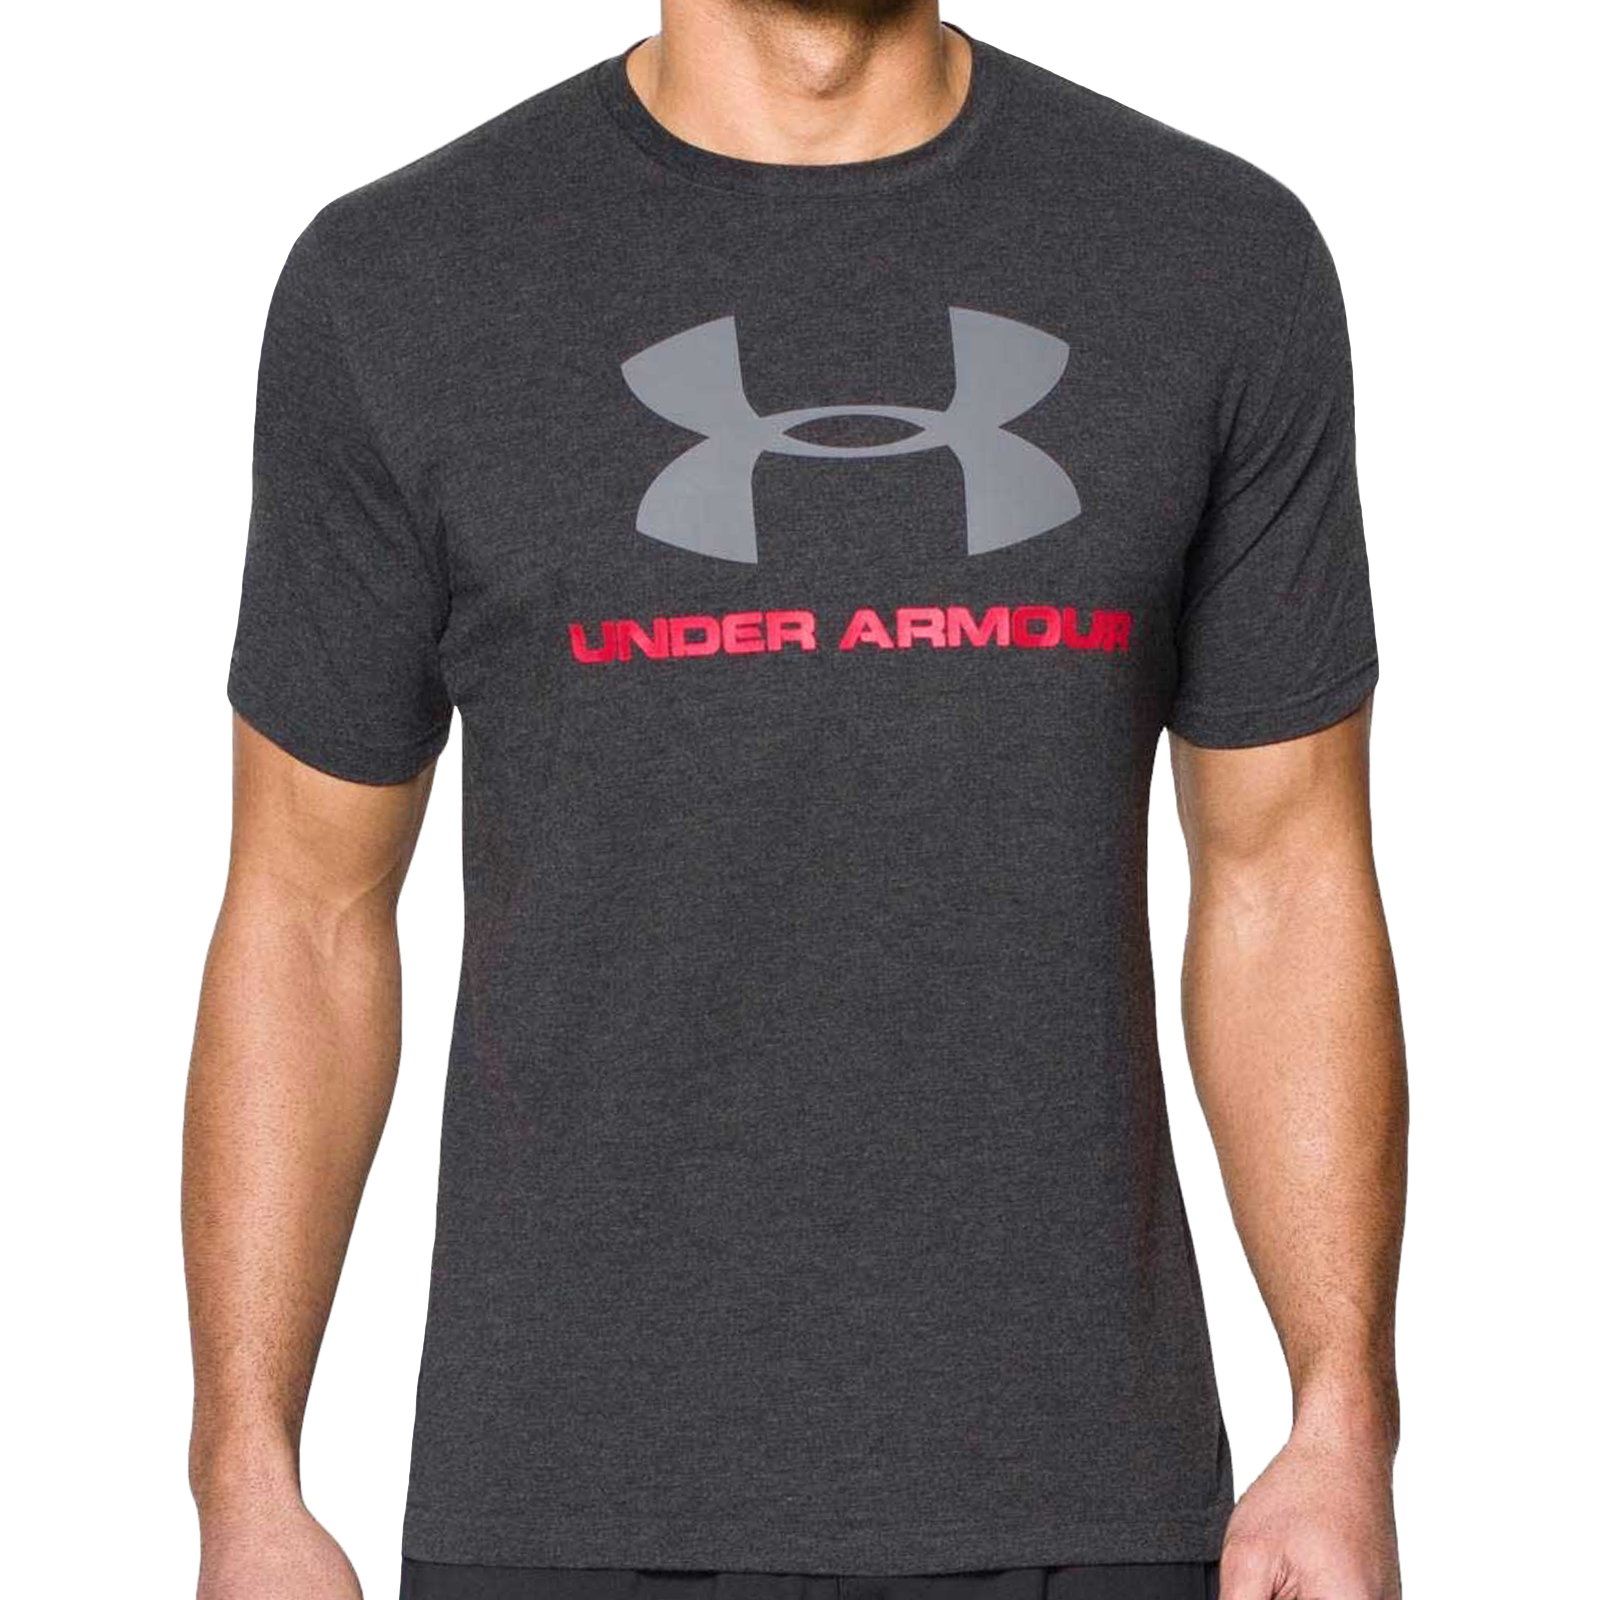 Under-Armour-Mens-Sportstyle-Logo-Charged-Cotton-Gym-Training-T-Shirt-Tee-Top